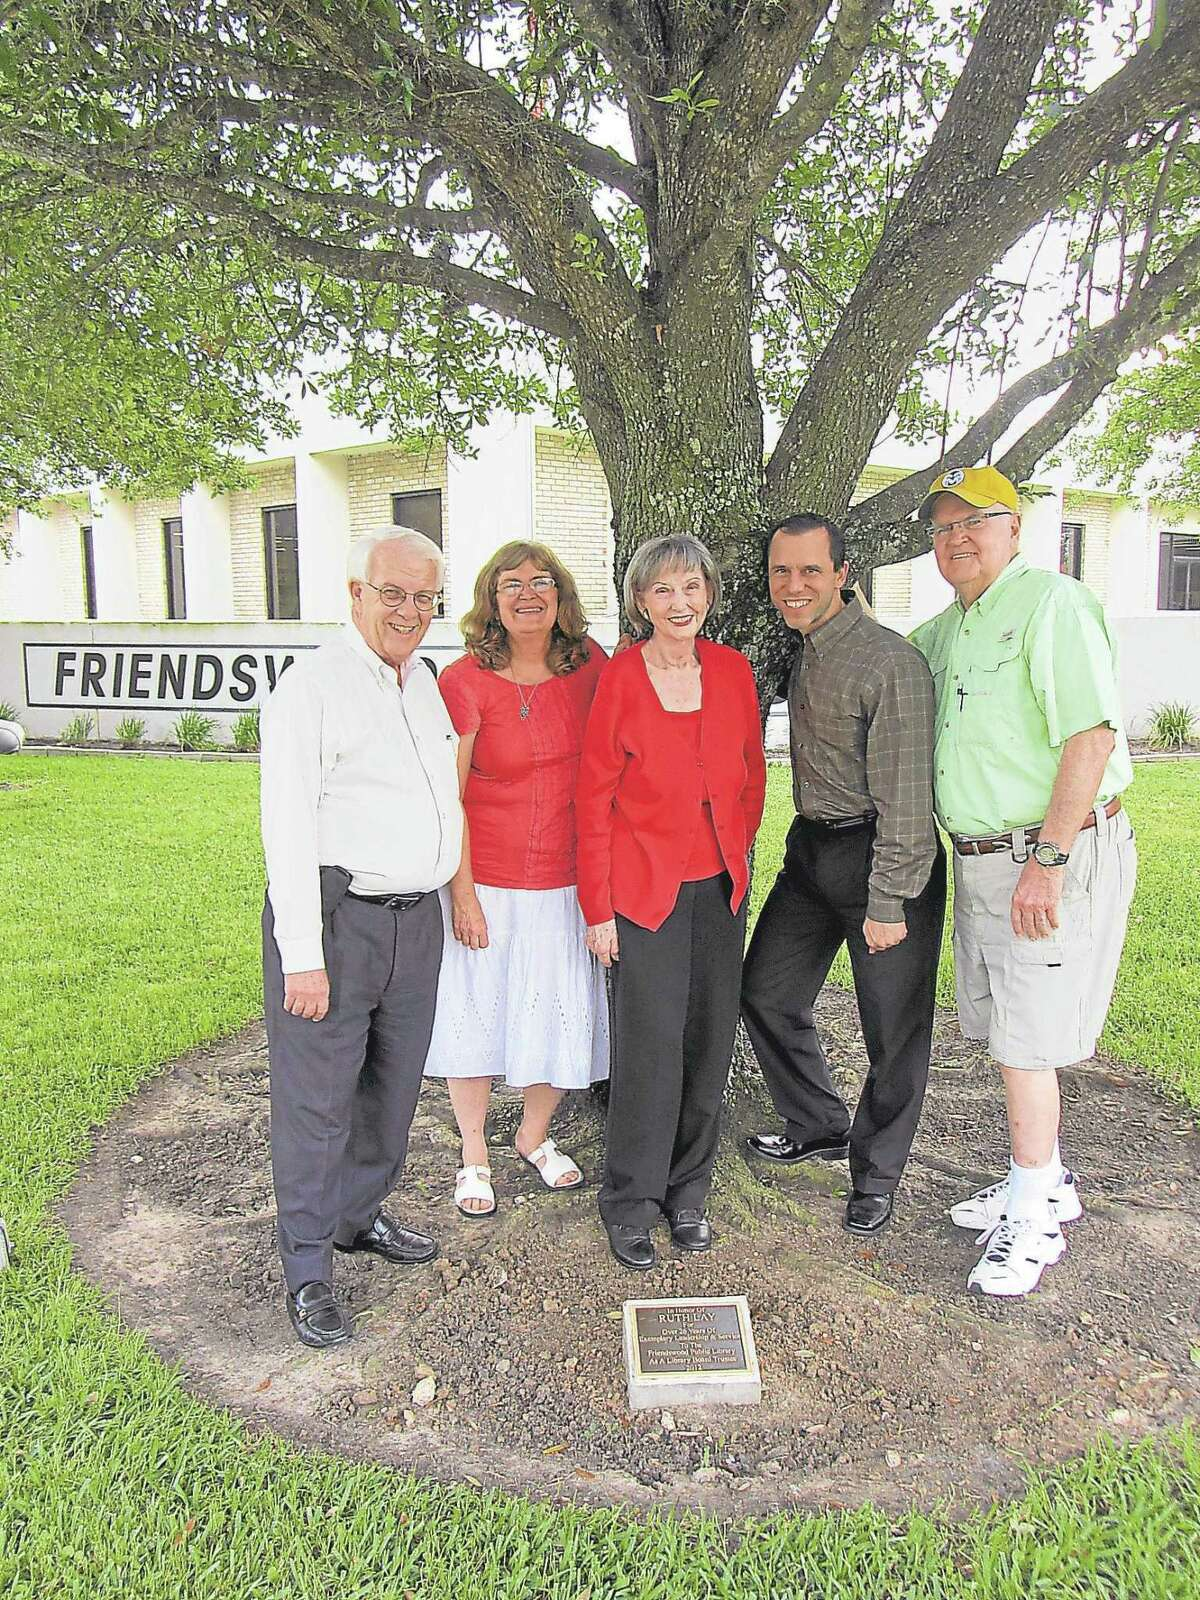 Ted Thomas Sr., right, joins a group in 2013 honoring Ruth Lay for her service to the Friendswood Public Library on the library board. Also pictured are Mike Czarowitz, left, Mary Perroni, Lay and Billy Enochs.